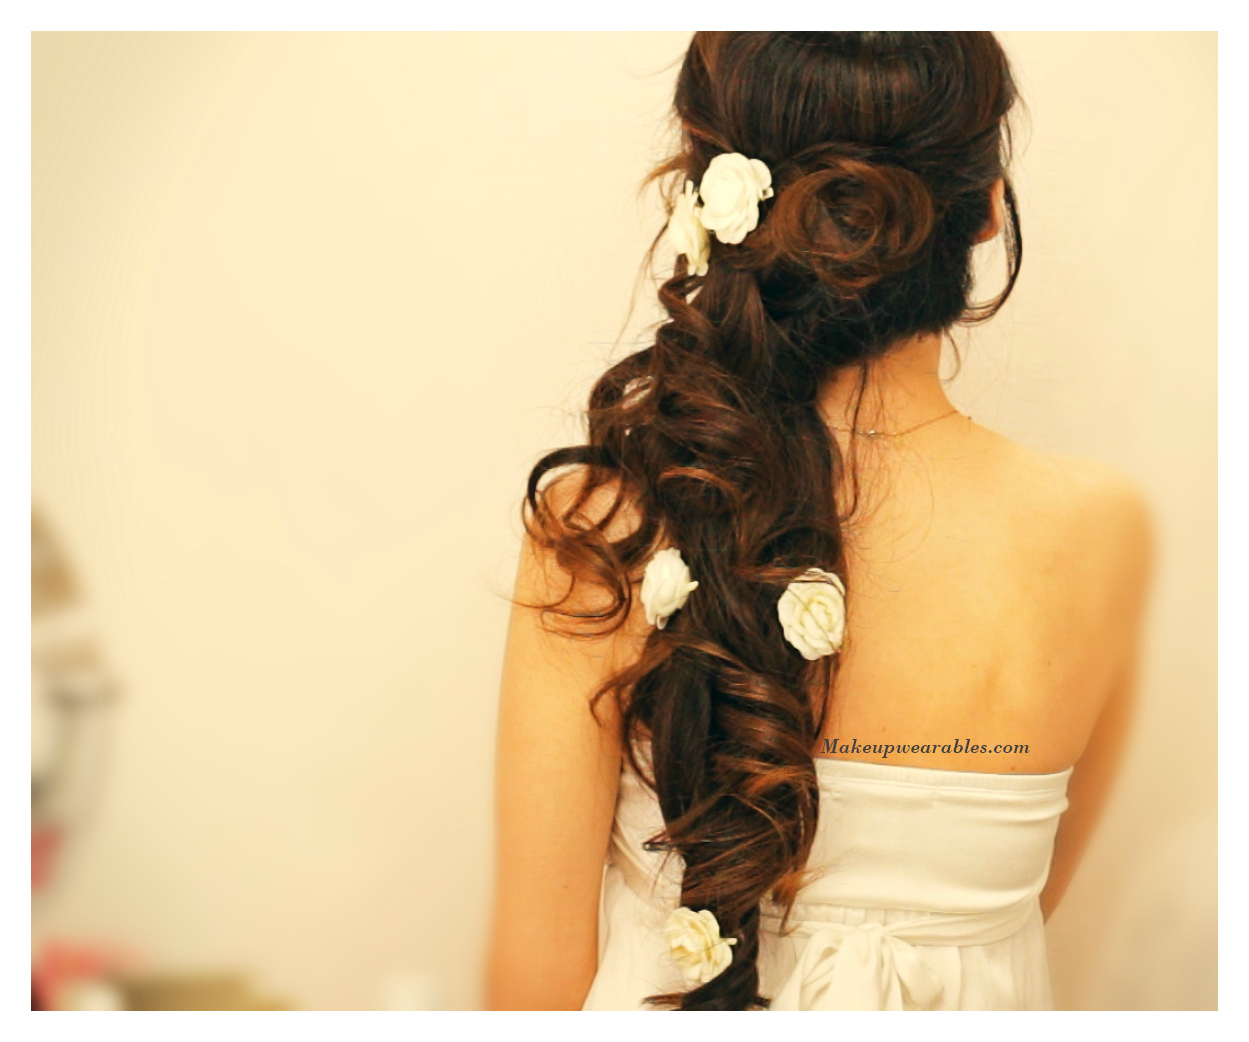 10 Most Beautiful Prom Hairstyles For Long Hair 2015